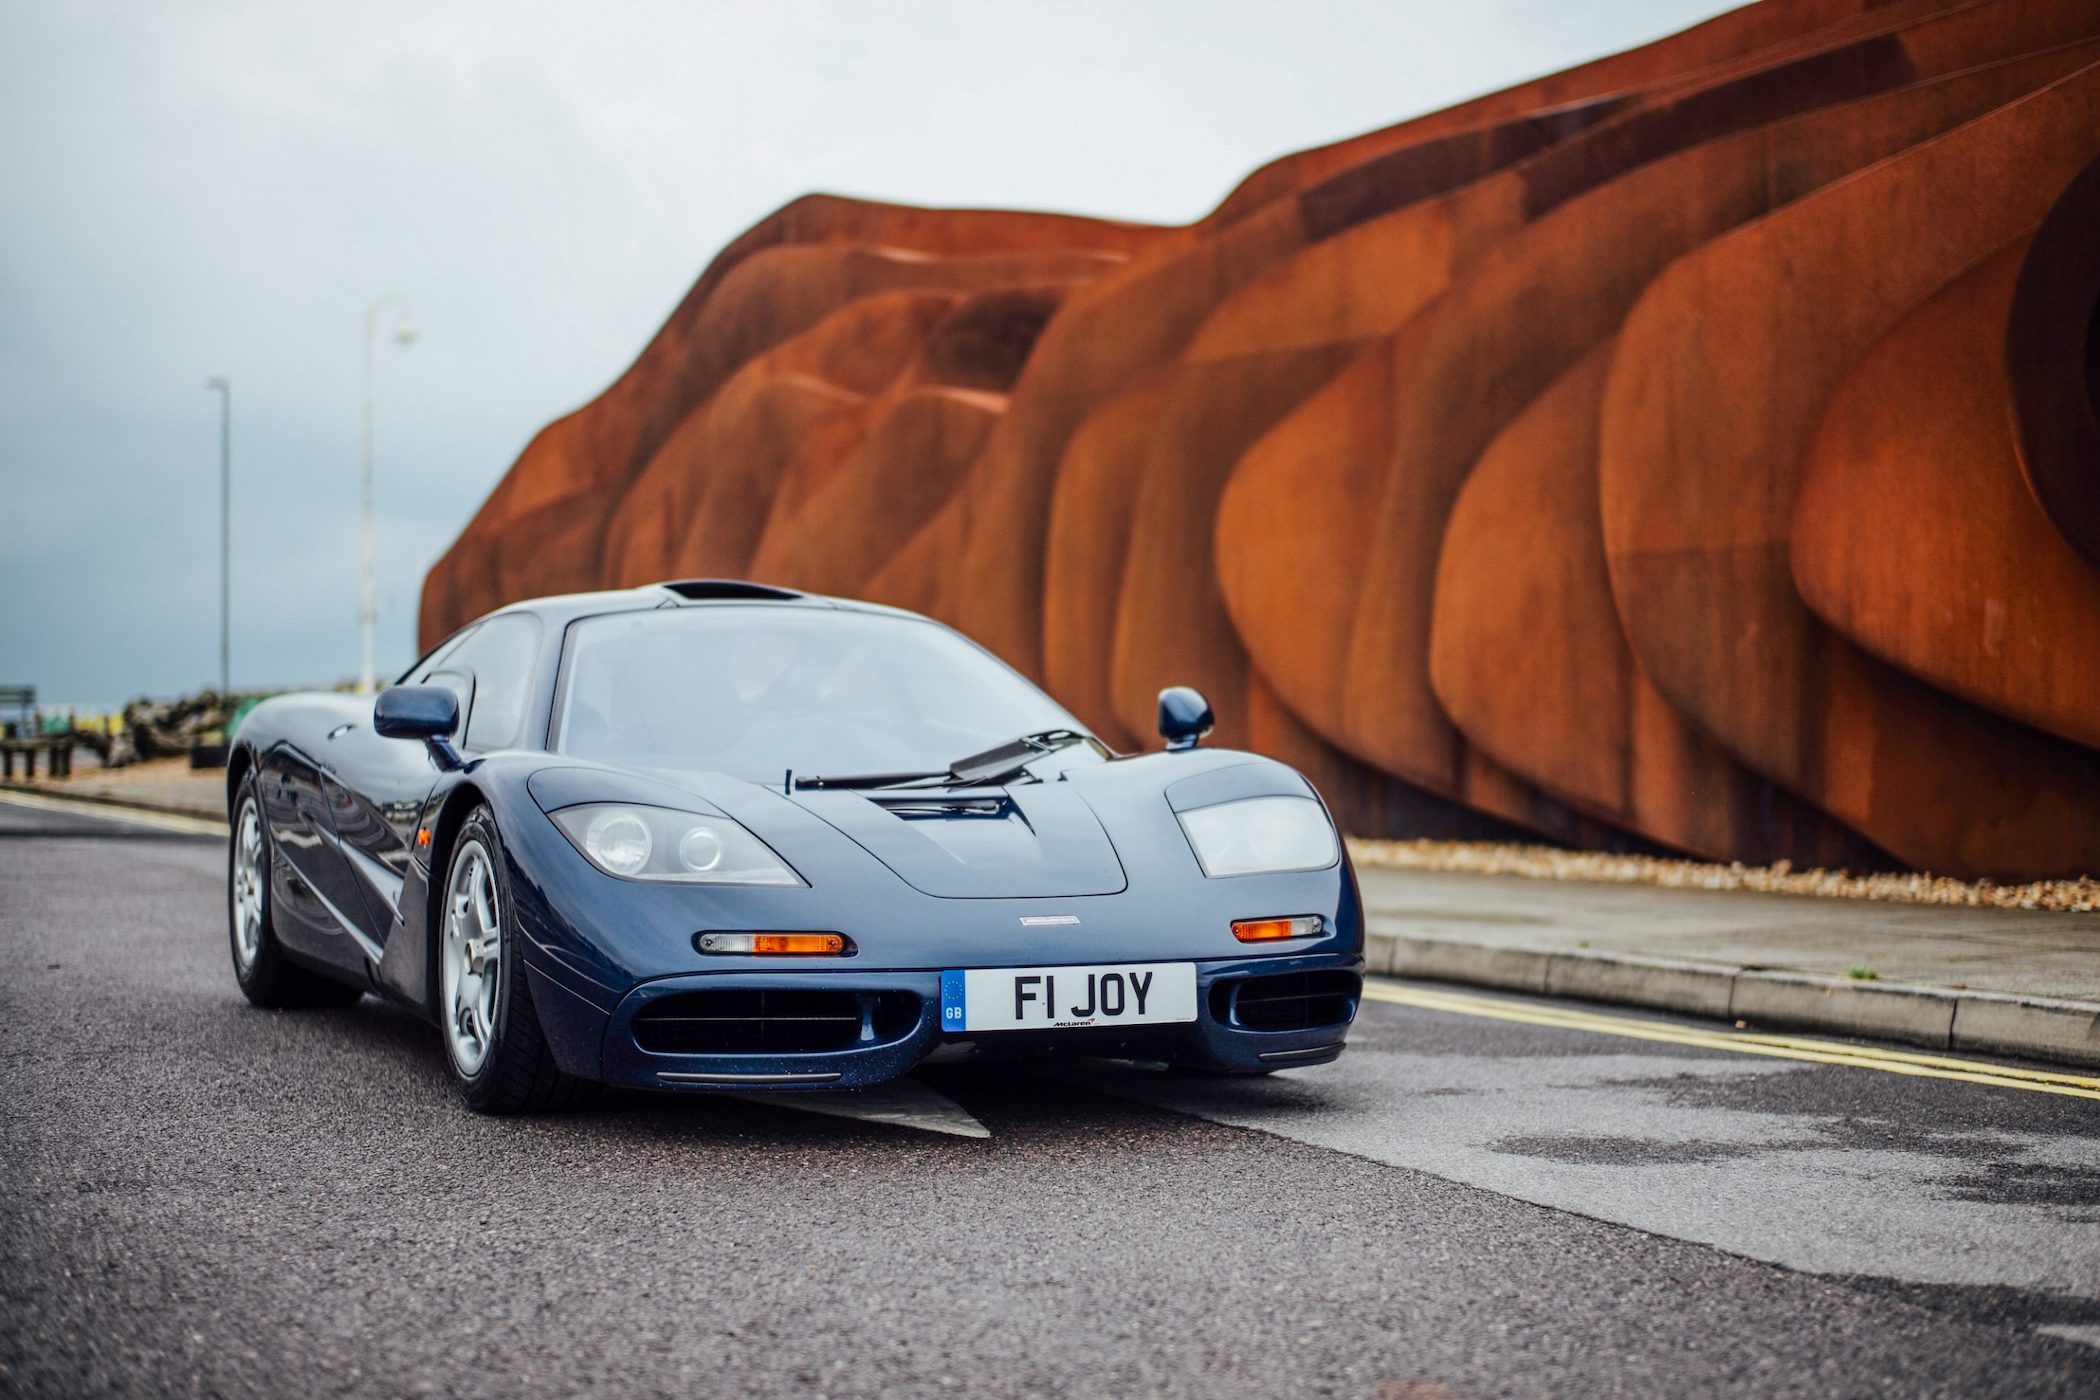 The Petrolhead Corner An Ode To The Mclaren F1 The Ultimate Modern Supercar